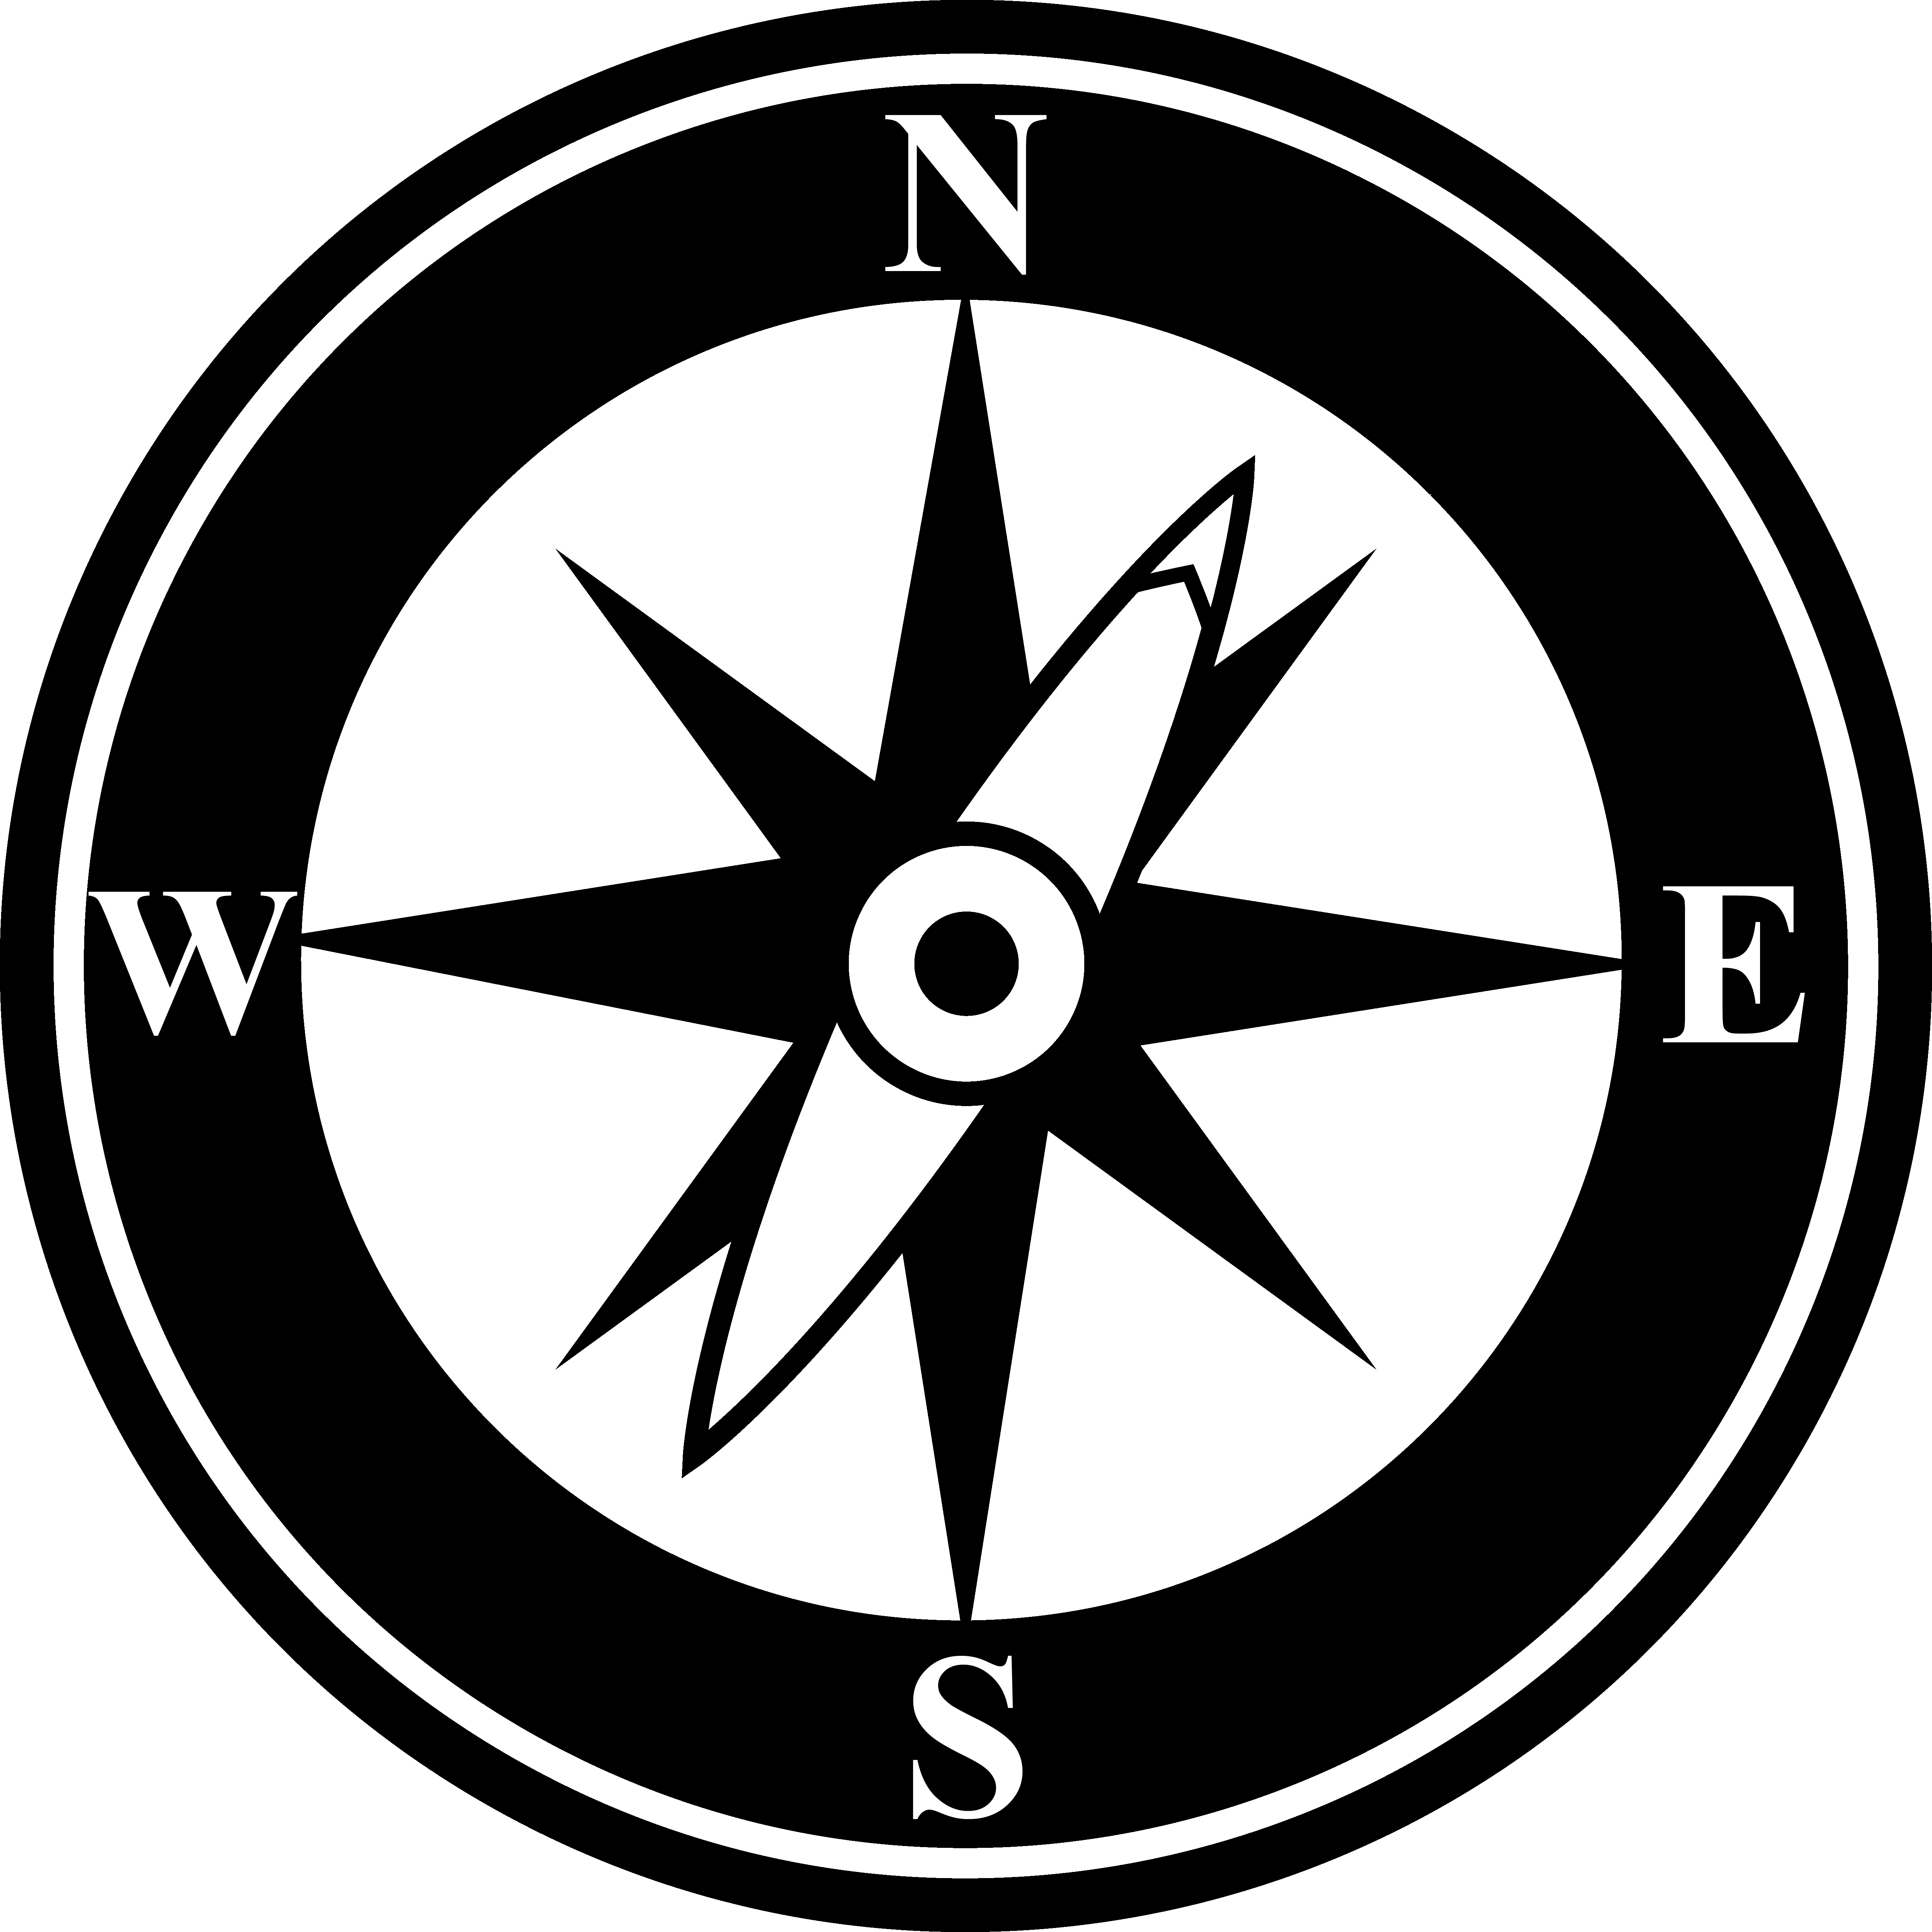 Clipart anchor compass. Clip art free images